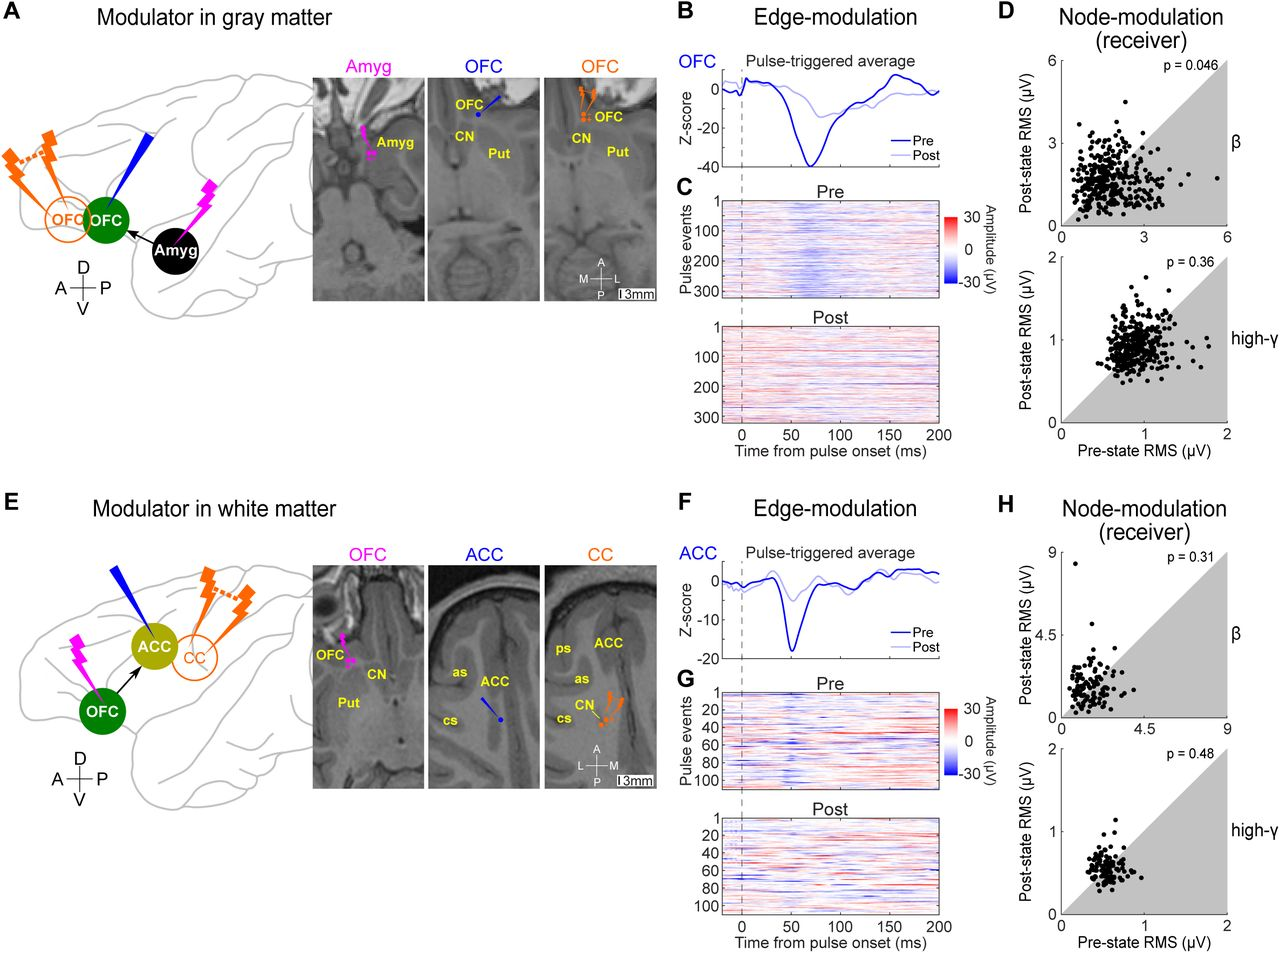 A Causal Network Analysis of Neuromodulation in the Cortico